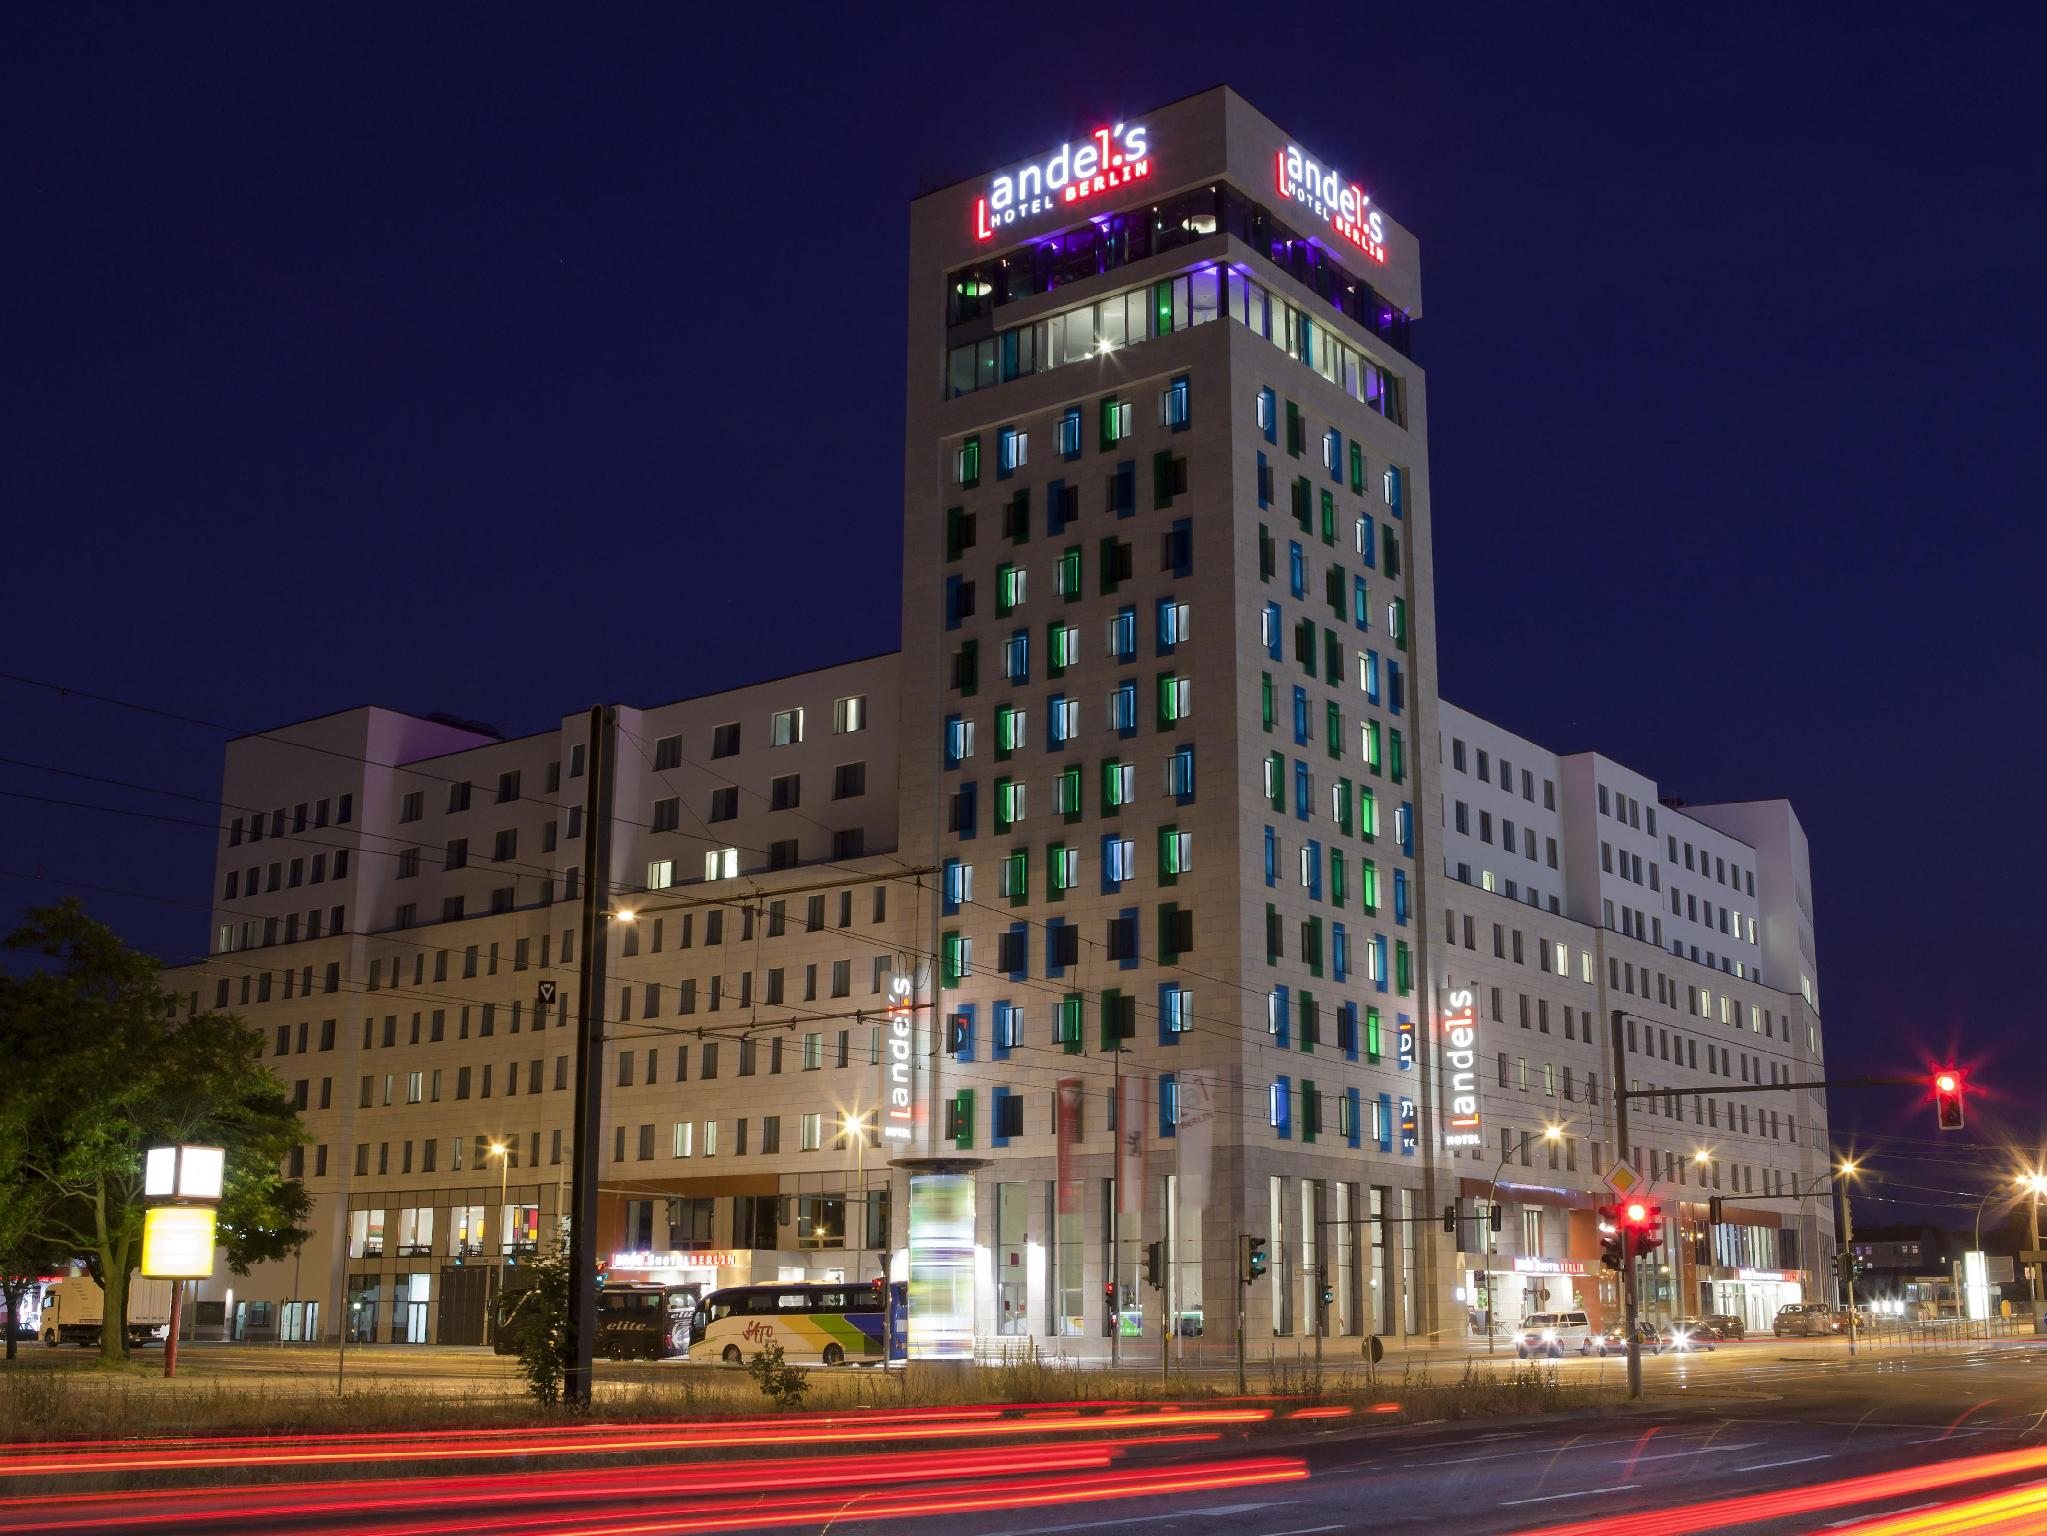 andel's Hotel Berlin, managed by Vienna International Hotels and Resorts ברלין - נוף